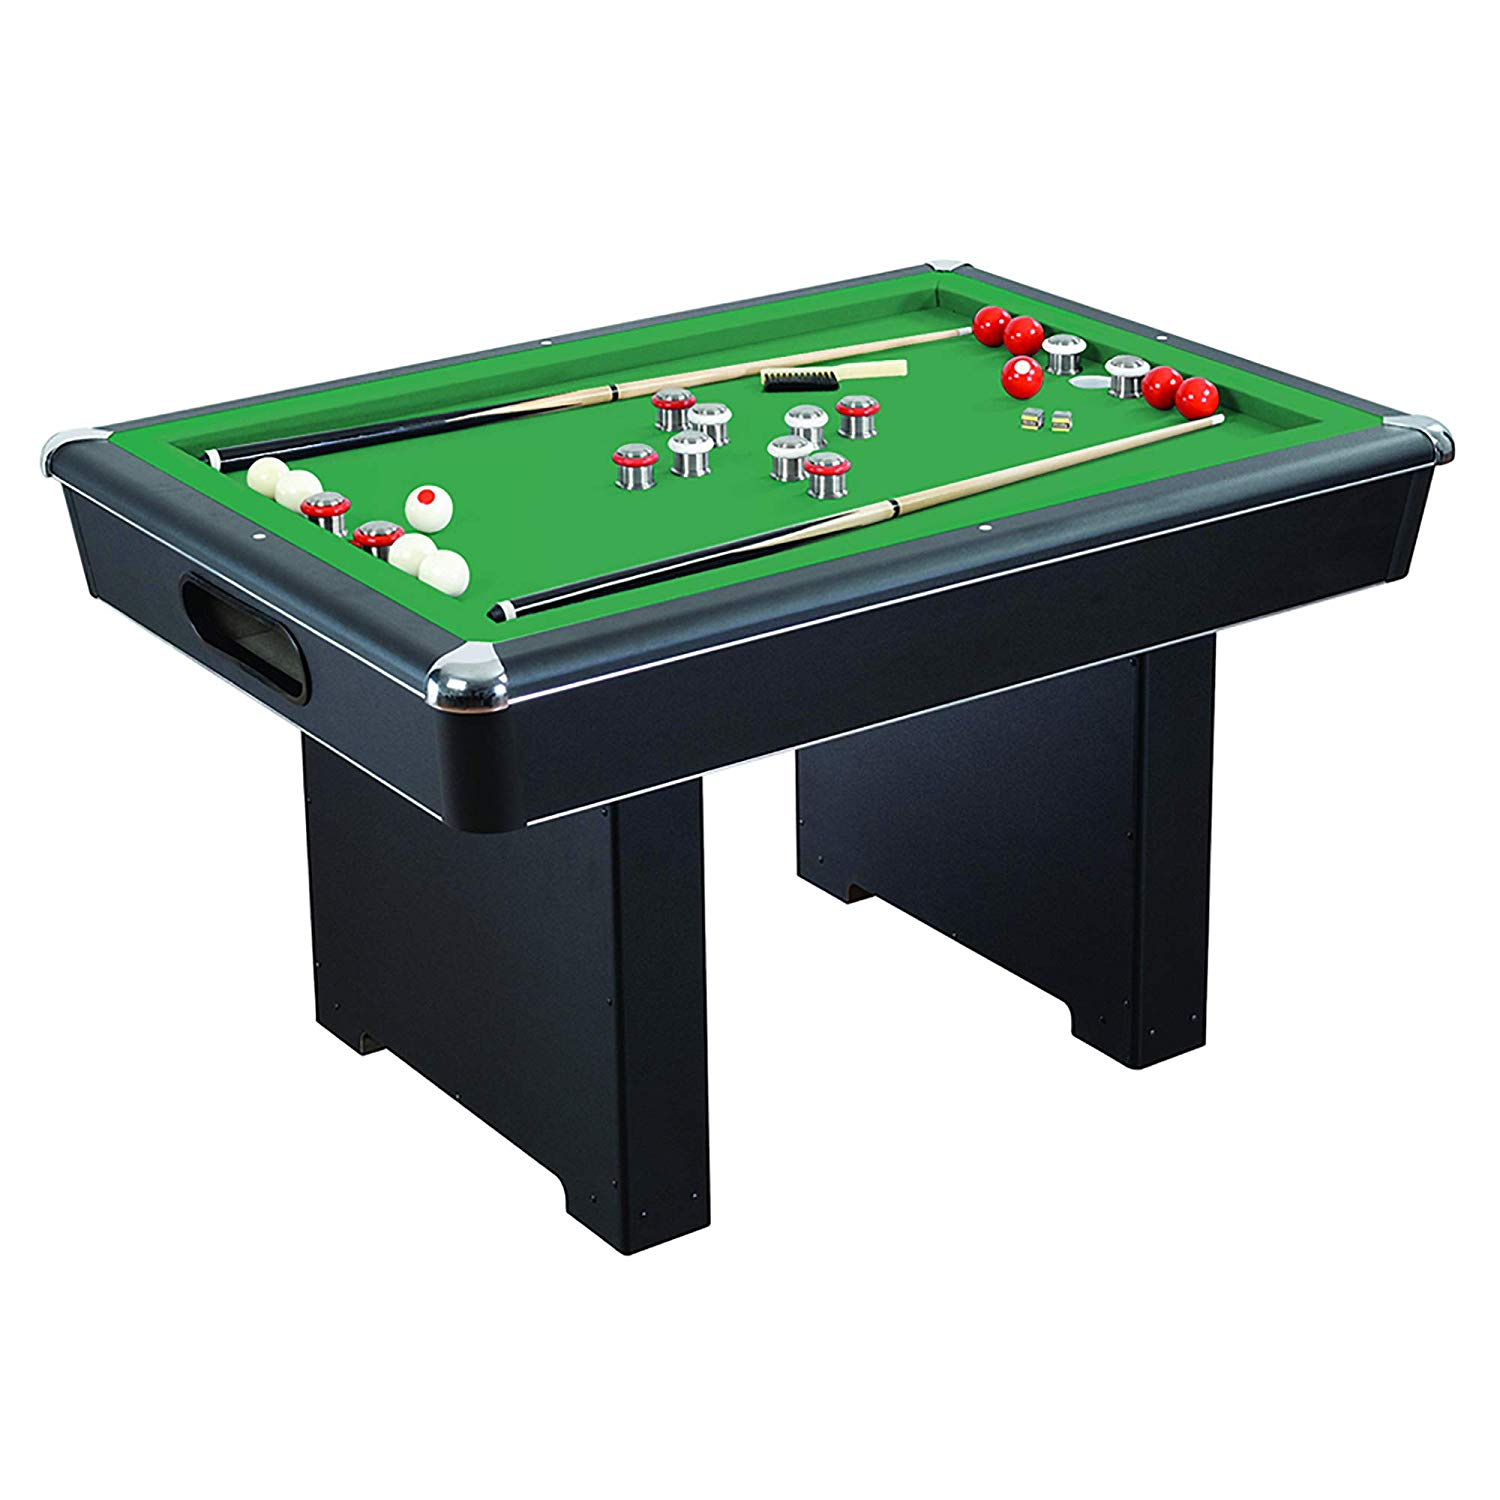 Ultimate Guide to Bumper Pool: Tables, Strategy, and More!